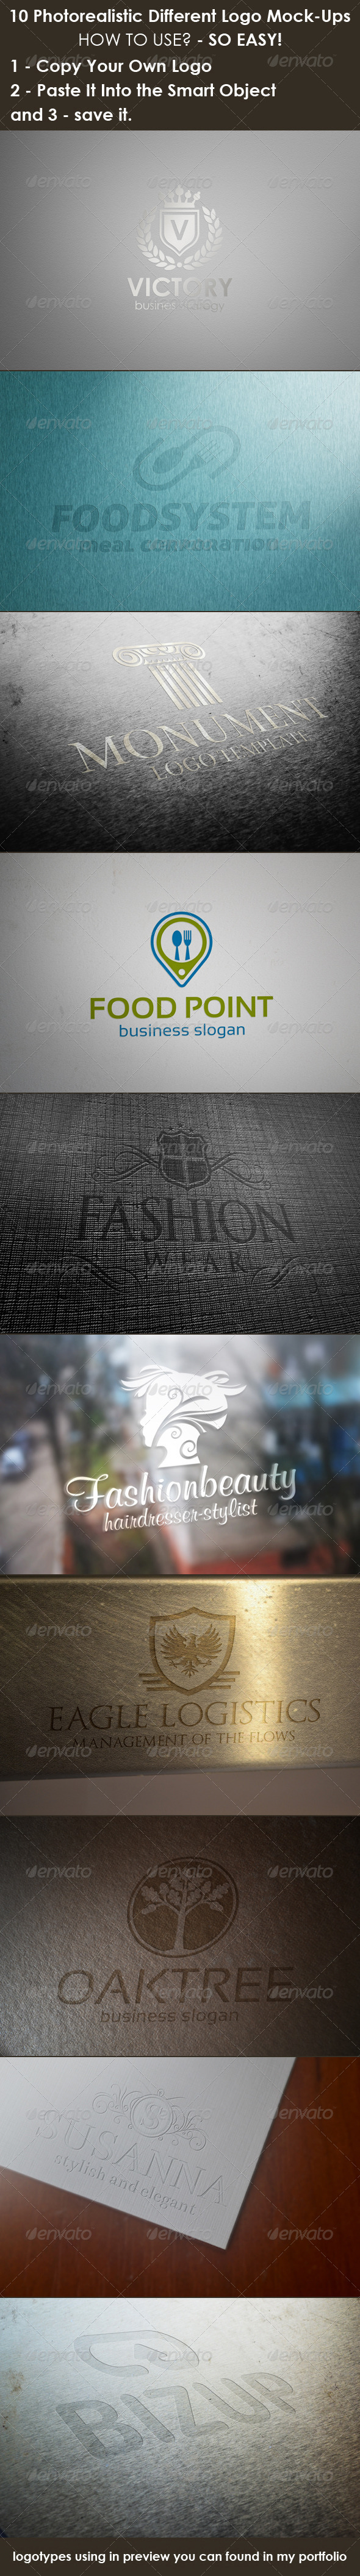 10 Photorealistic Different Logo Mock-Ups - Logo Product Mock-Ups